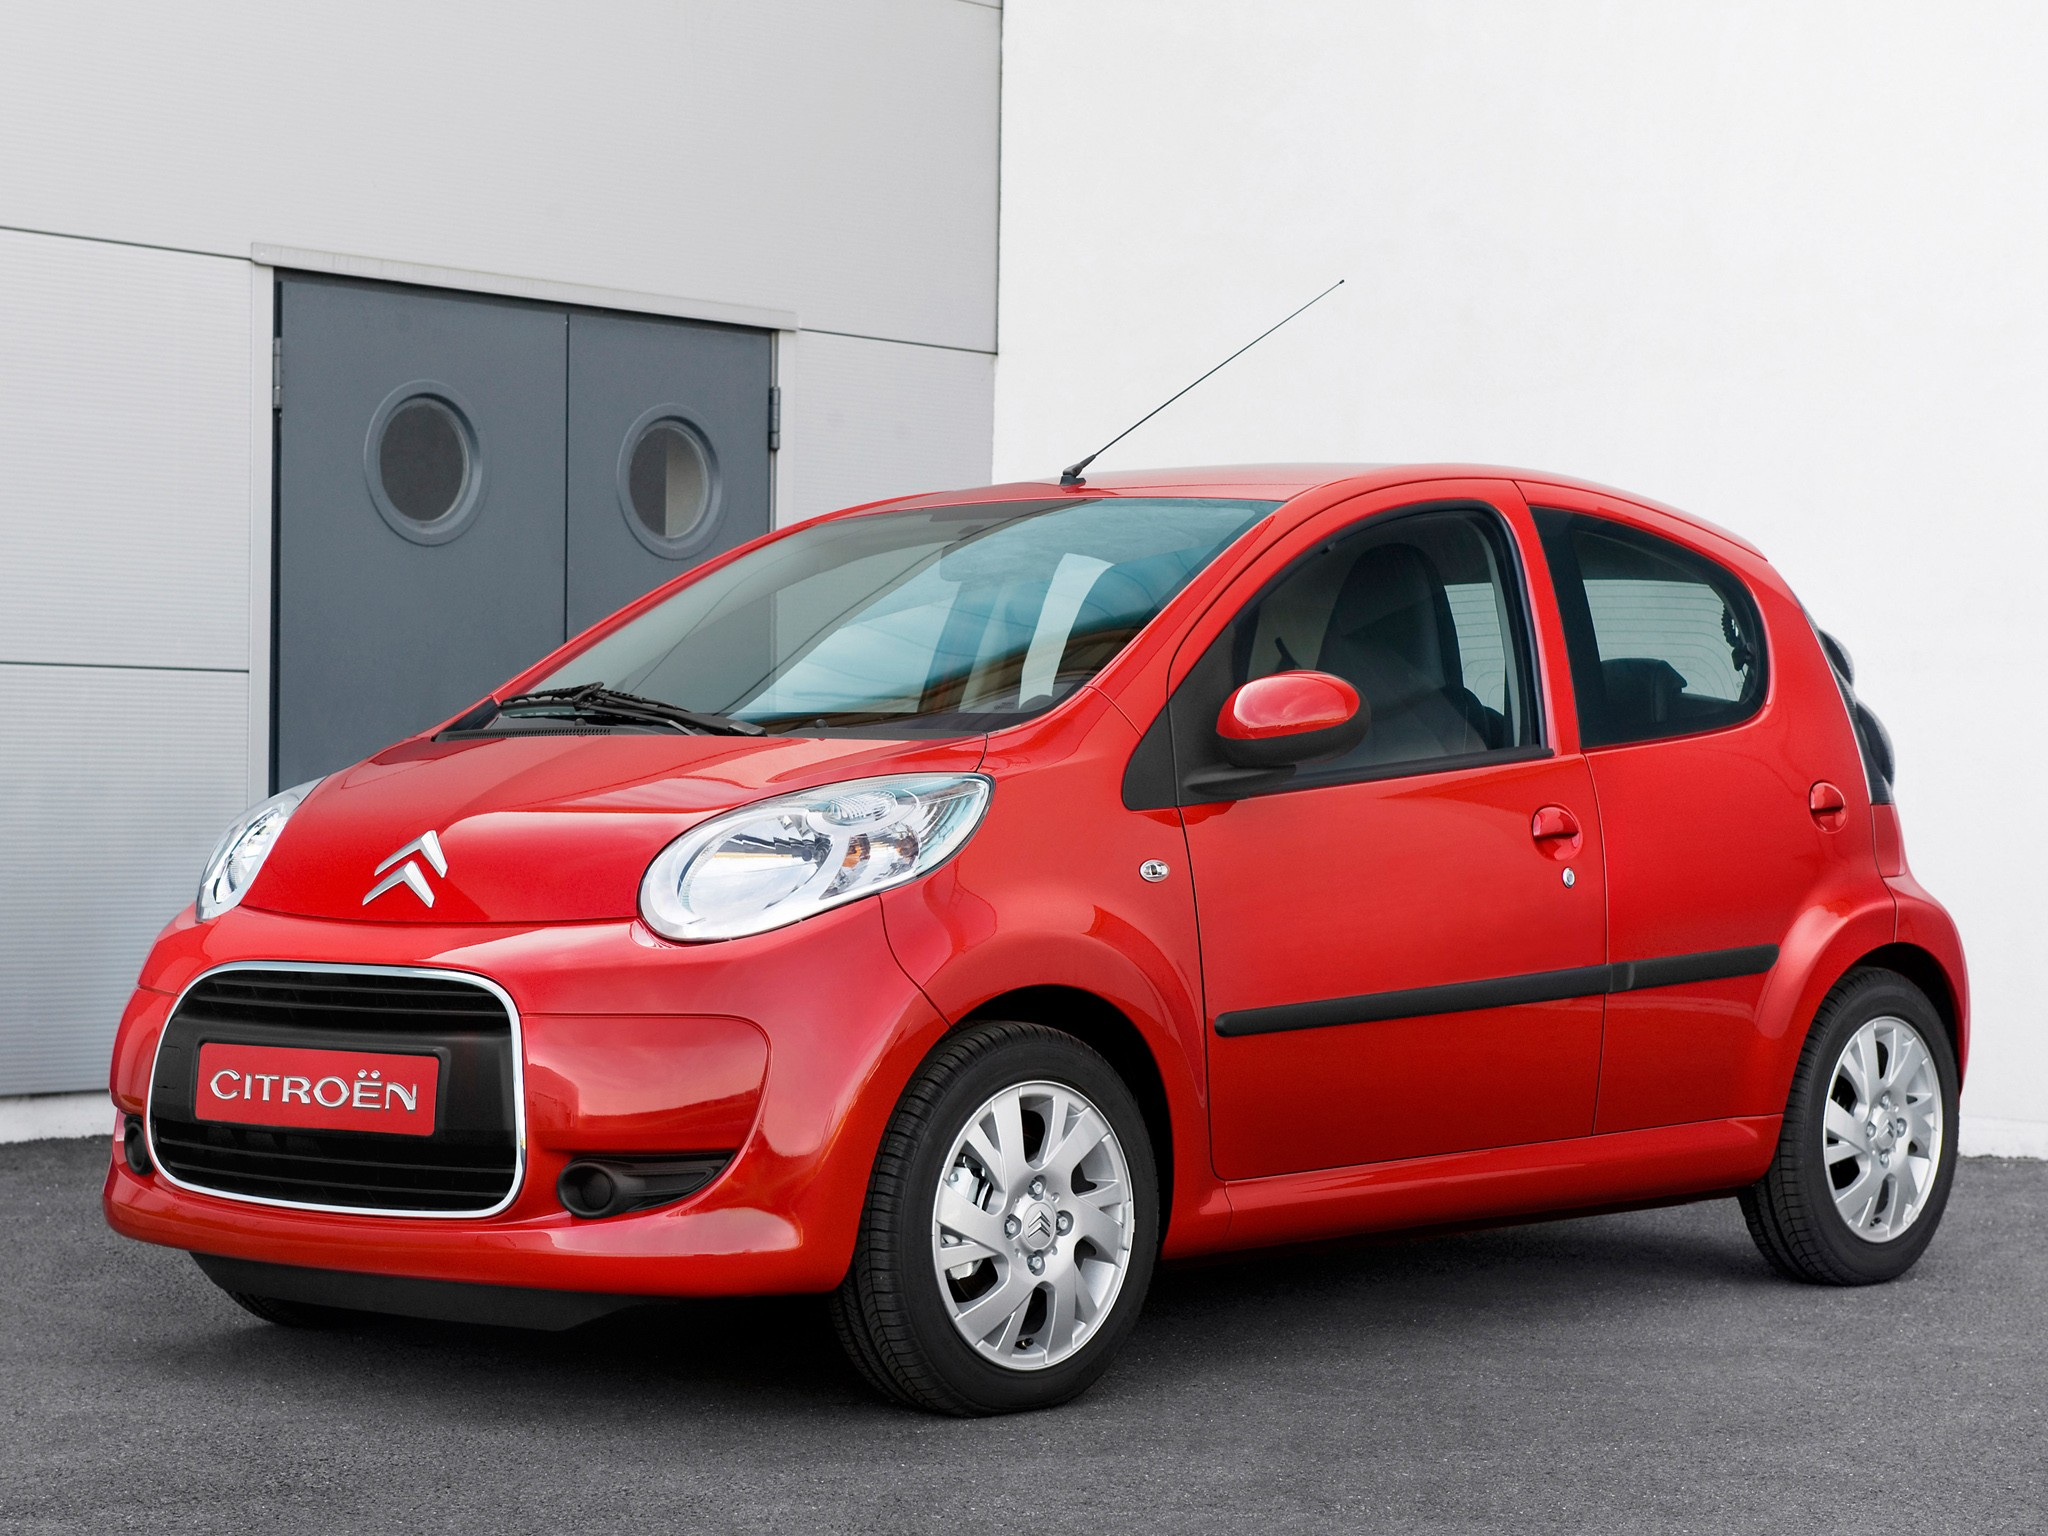 CITROEN C1 5 Doors - 2009, 2010, 2011, 2012 - autoevolution